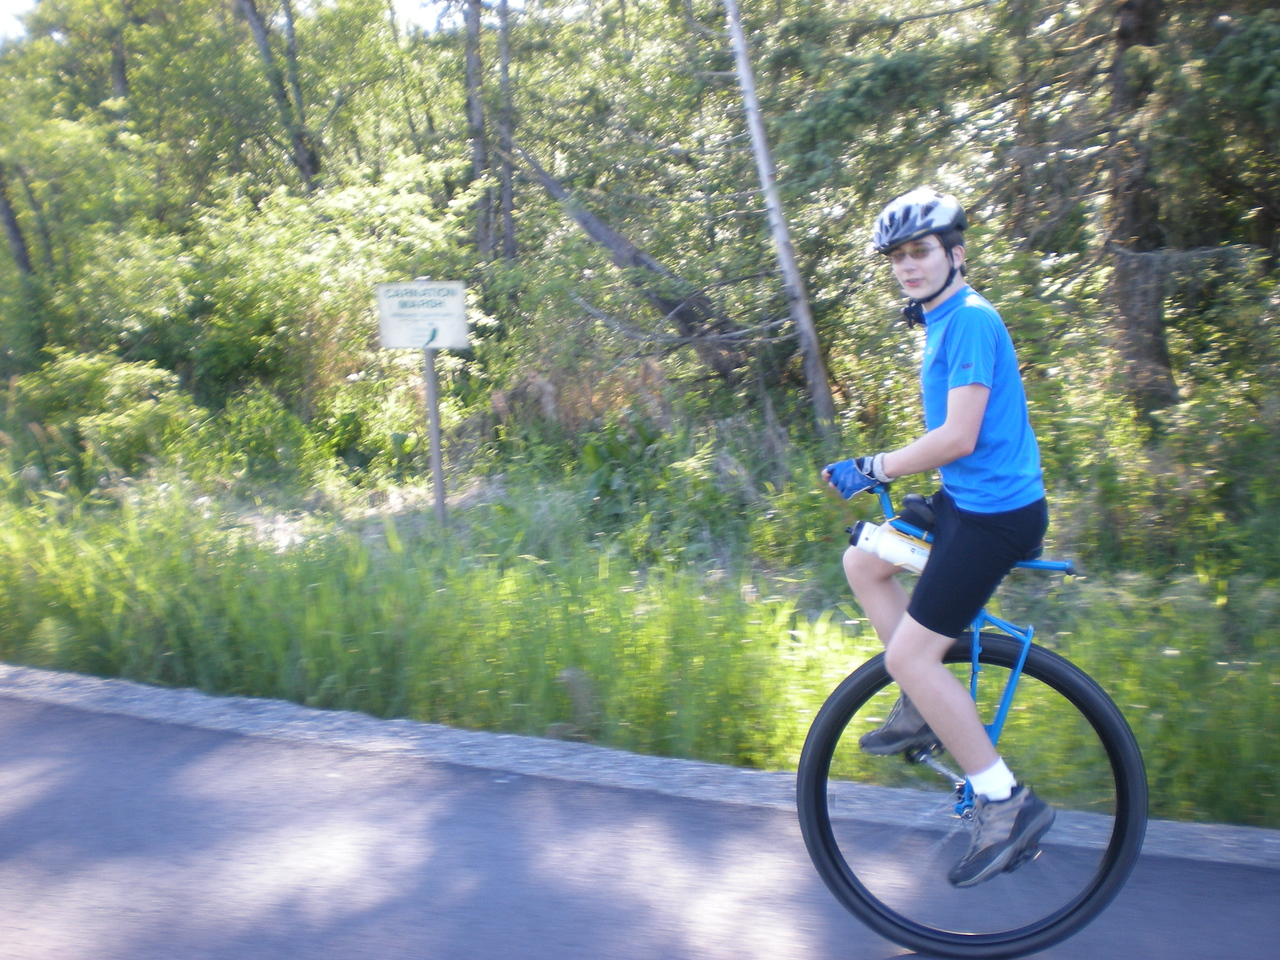 2008: Miles riding past the Carnation Marsh sign. This time a month ago, the road he is riding on was submerged under the Snoqualmie River. Nicer conditions today.